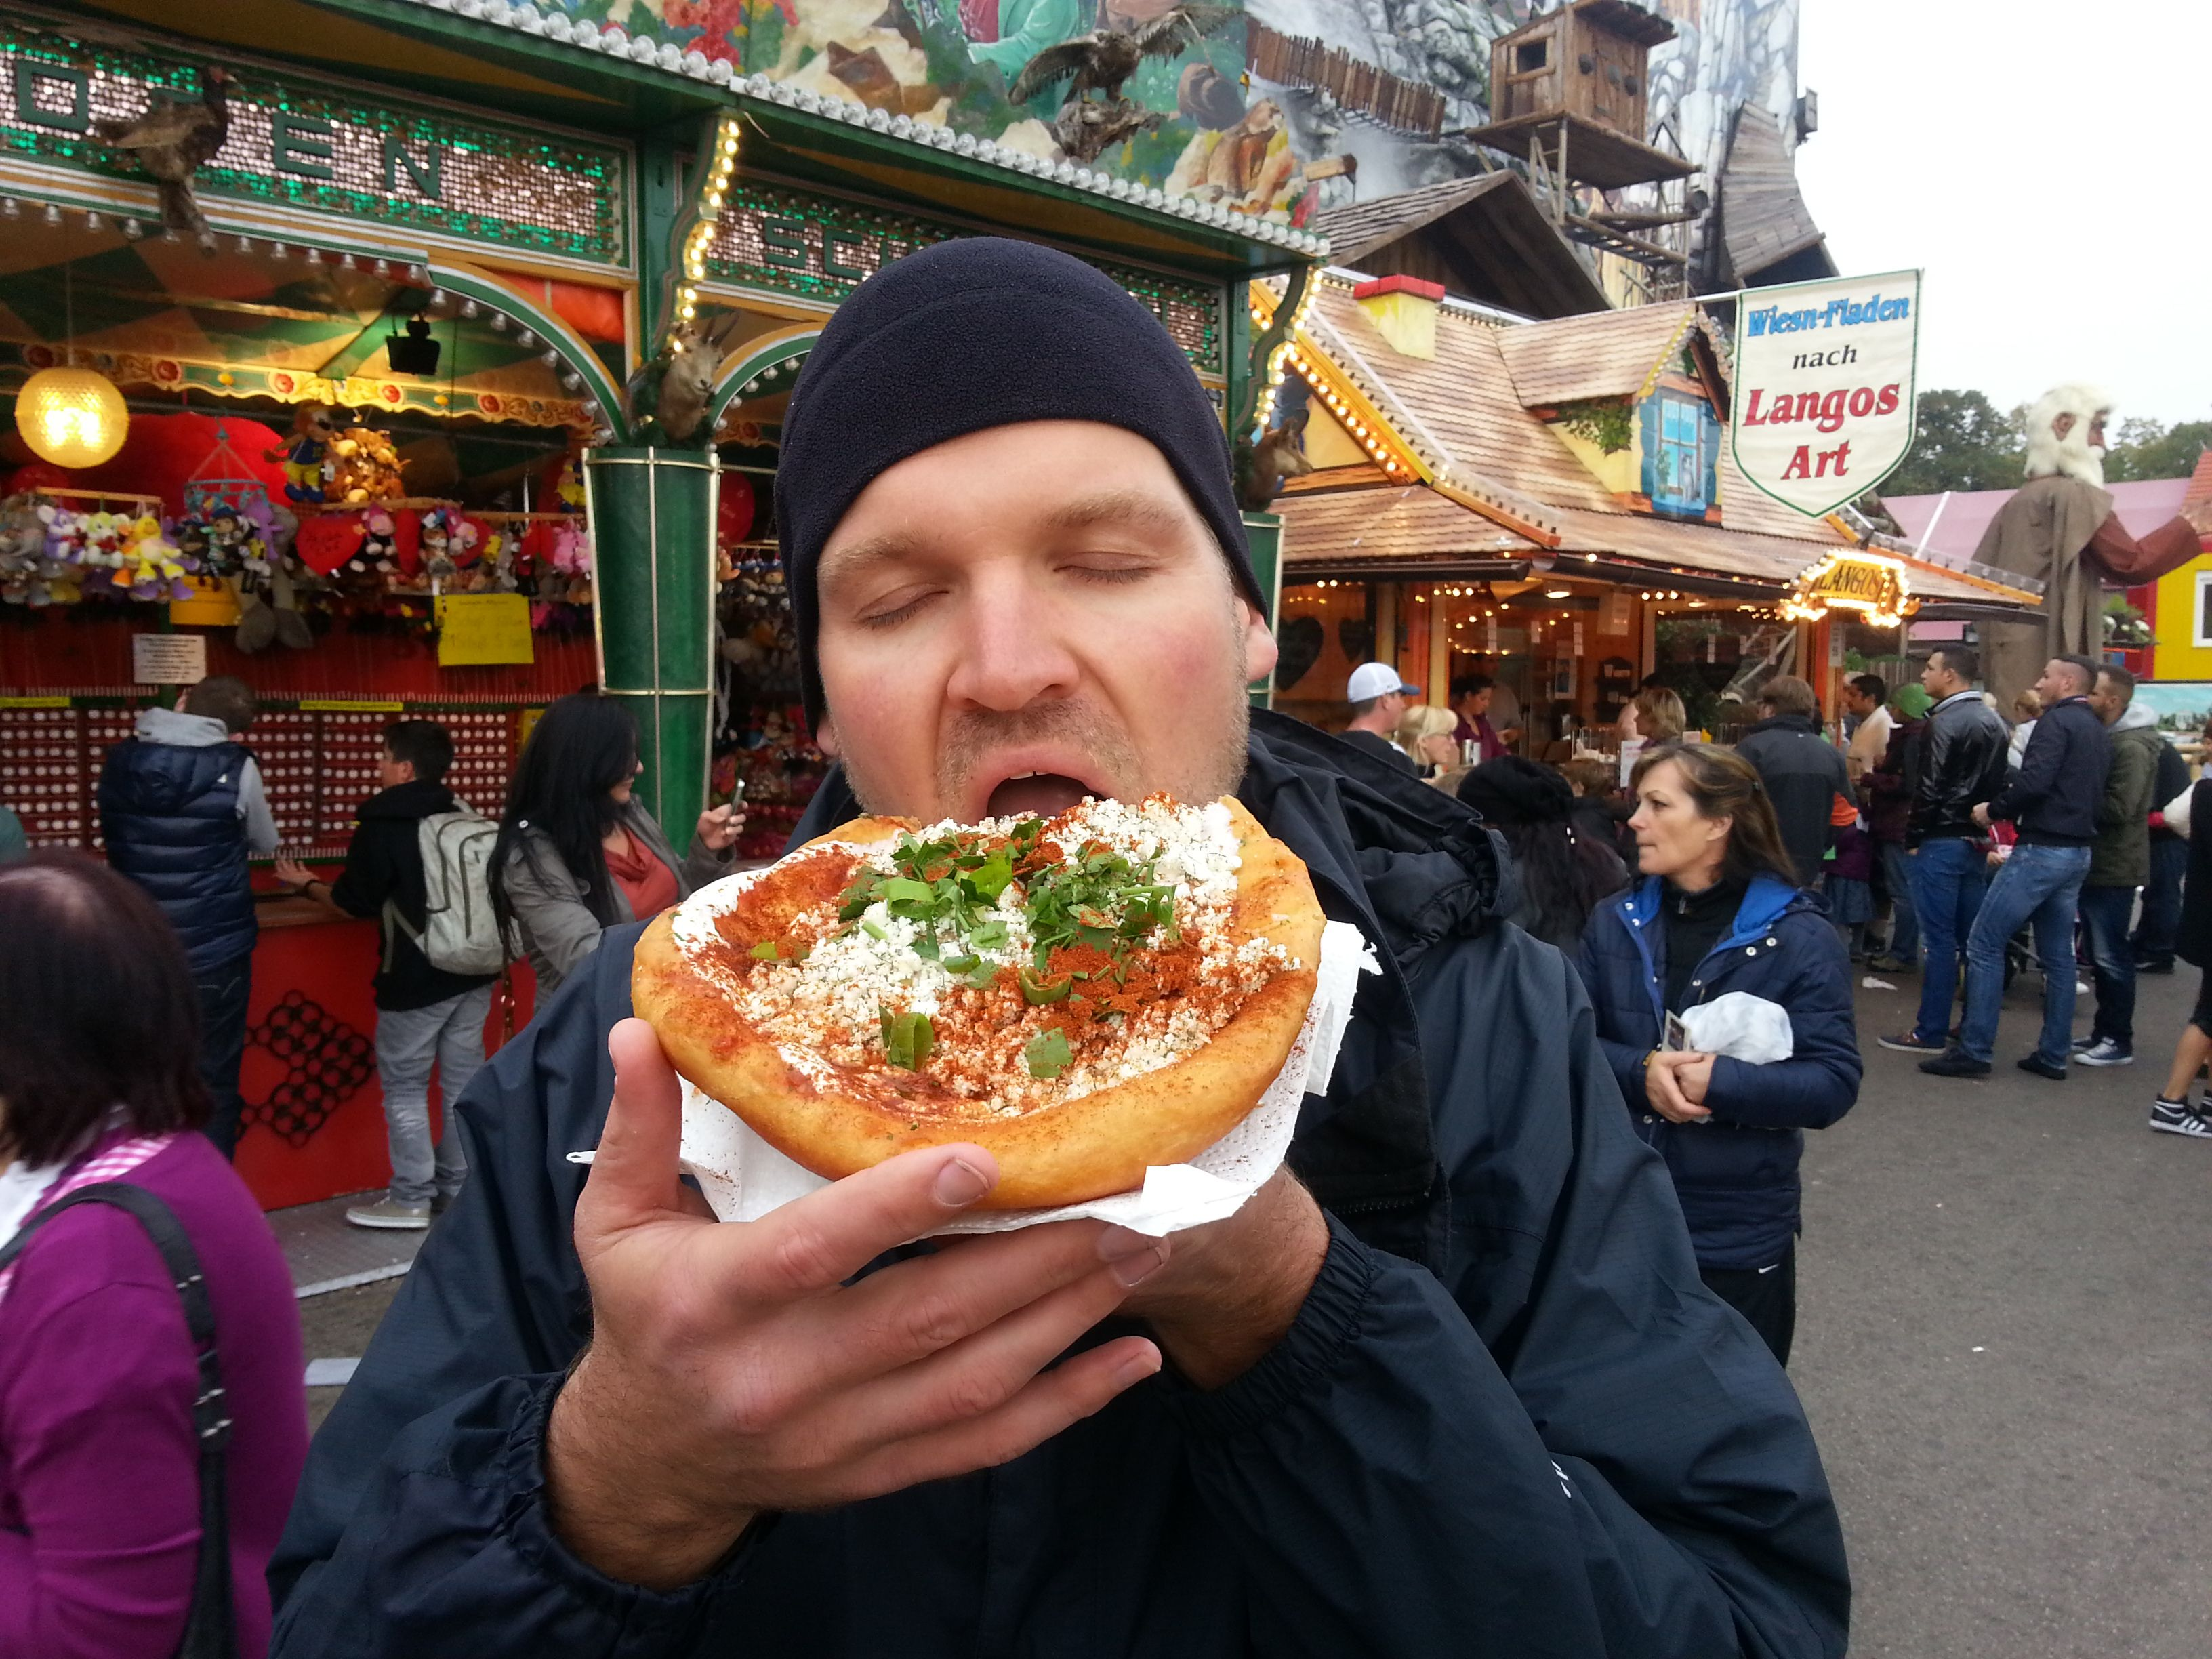 Who needs a spouse when the langos from Oktoberfest satisfies every sensation?